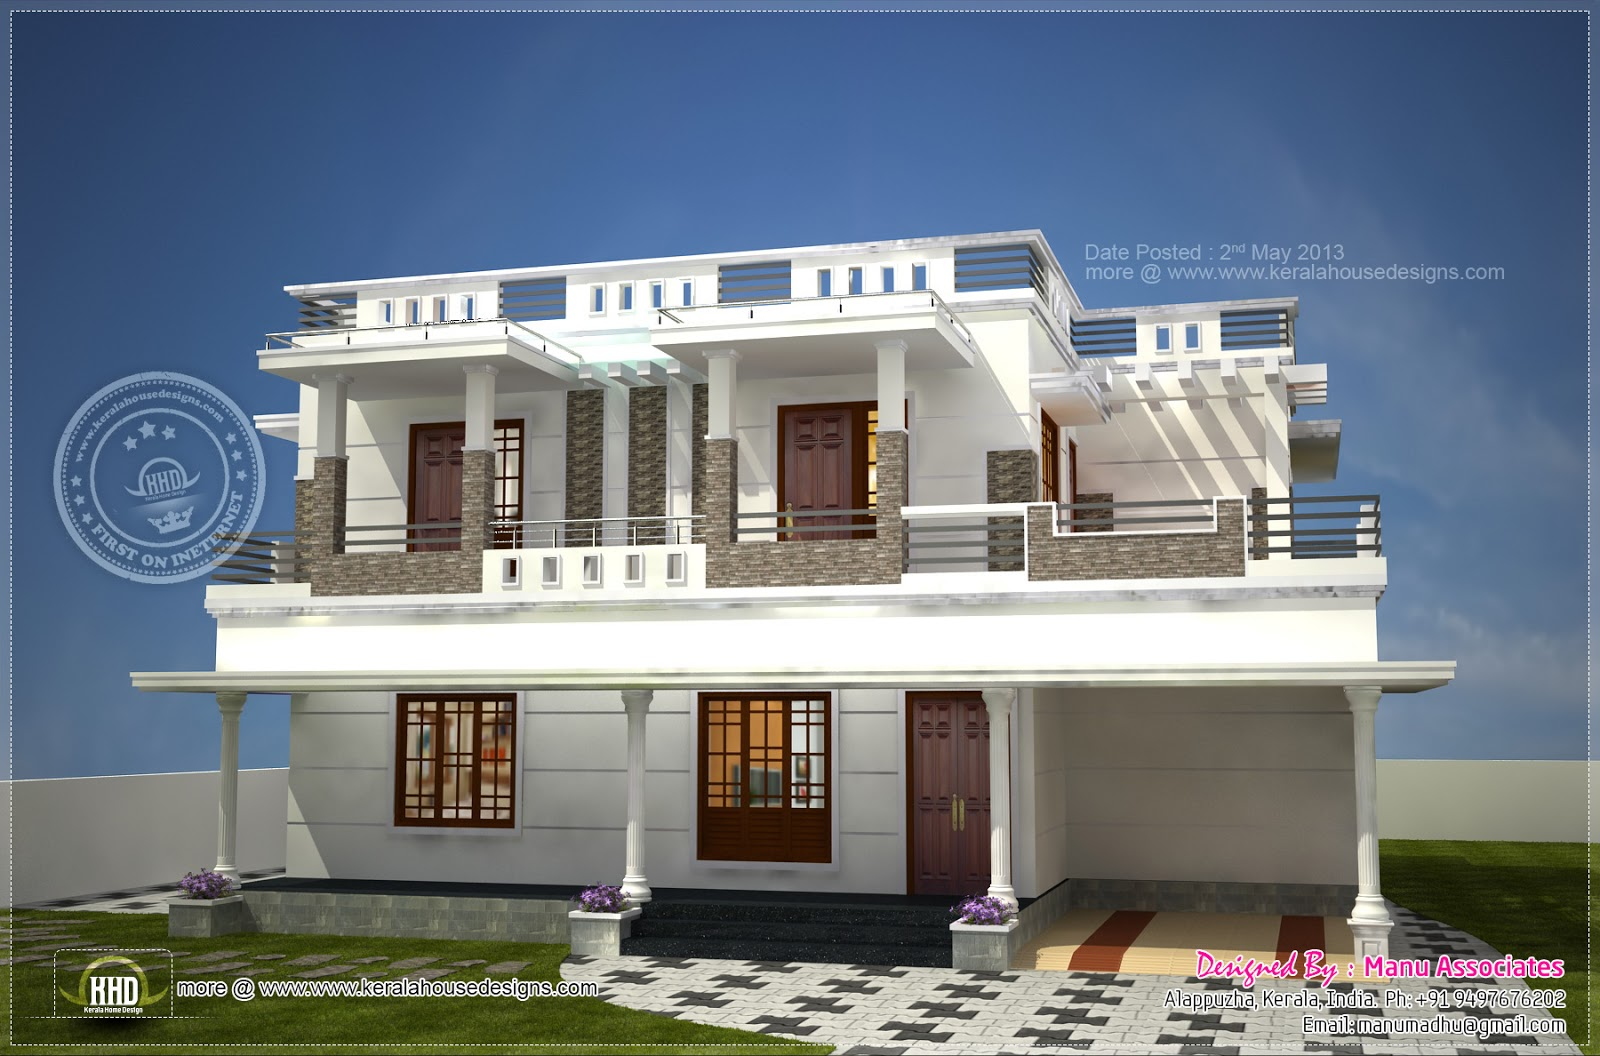 Modern home design in alappuzha kerala house design plans House design